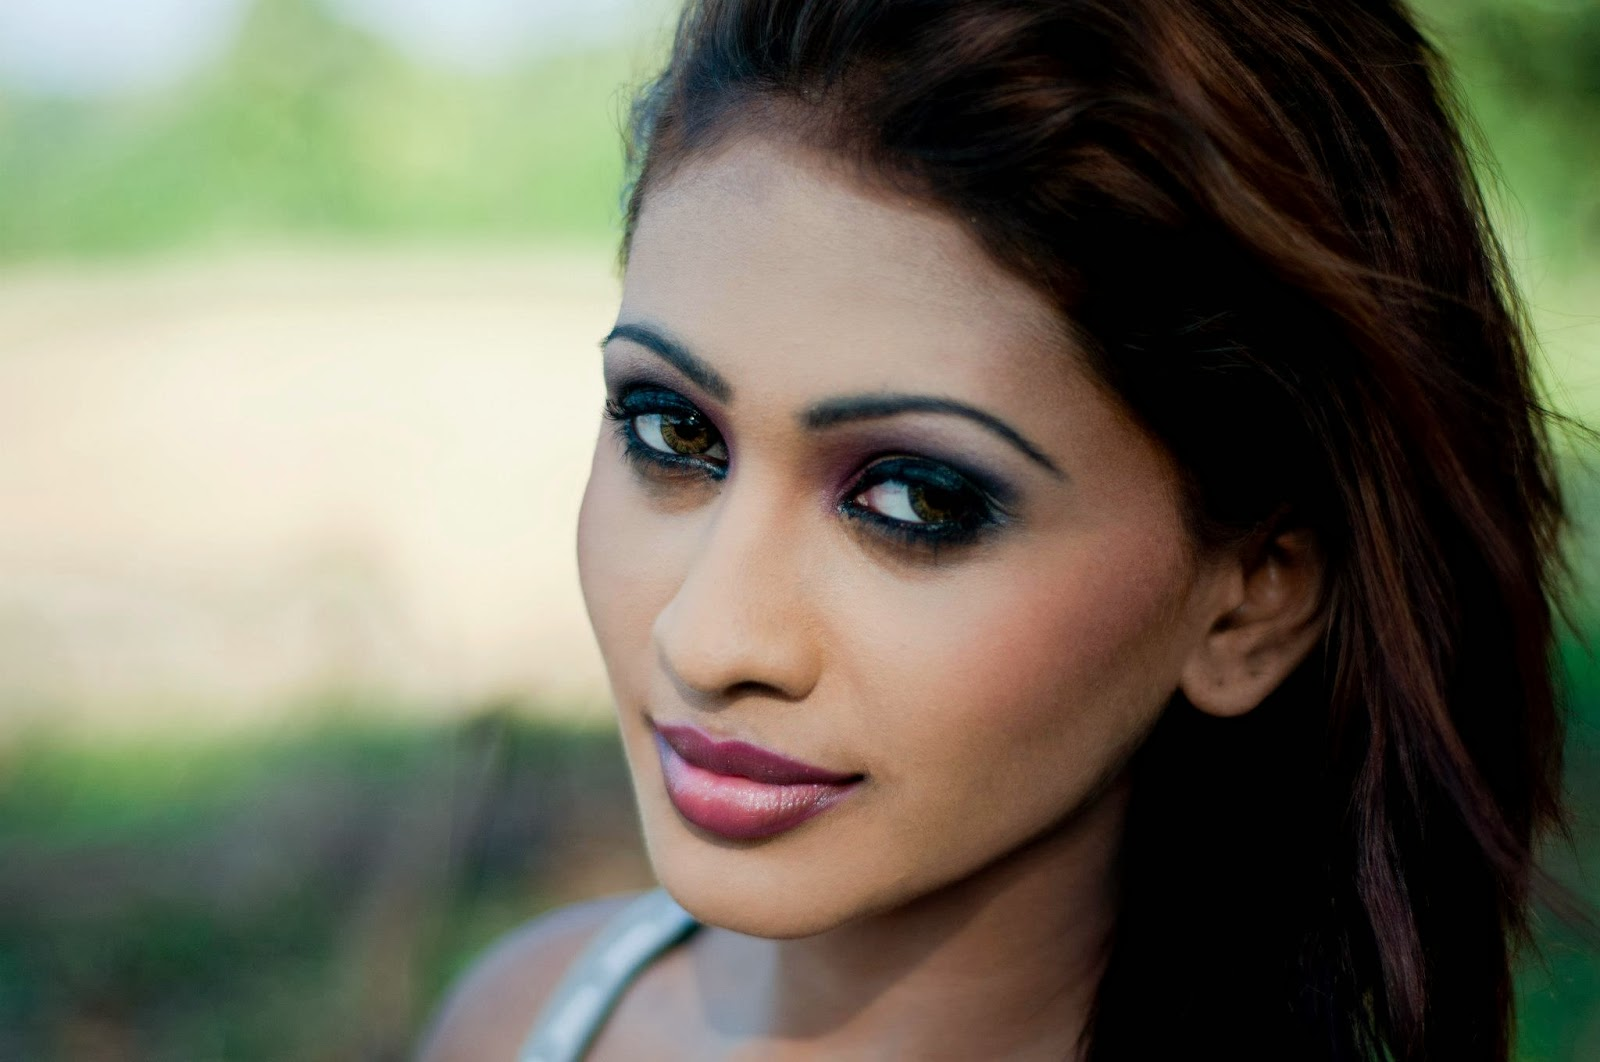 Sri Lankan Actress And Models: Piumi